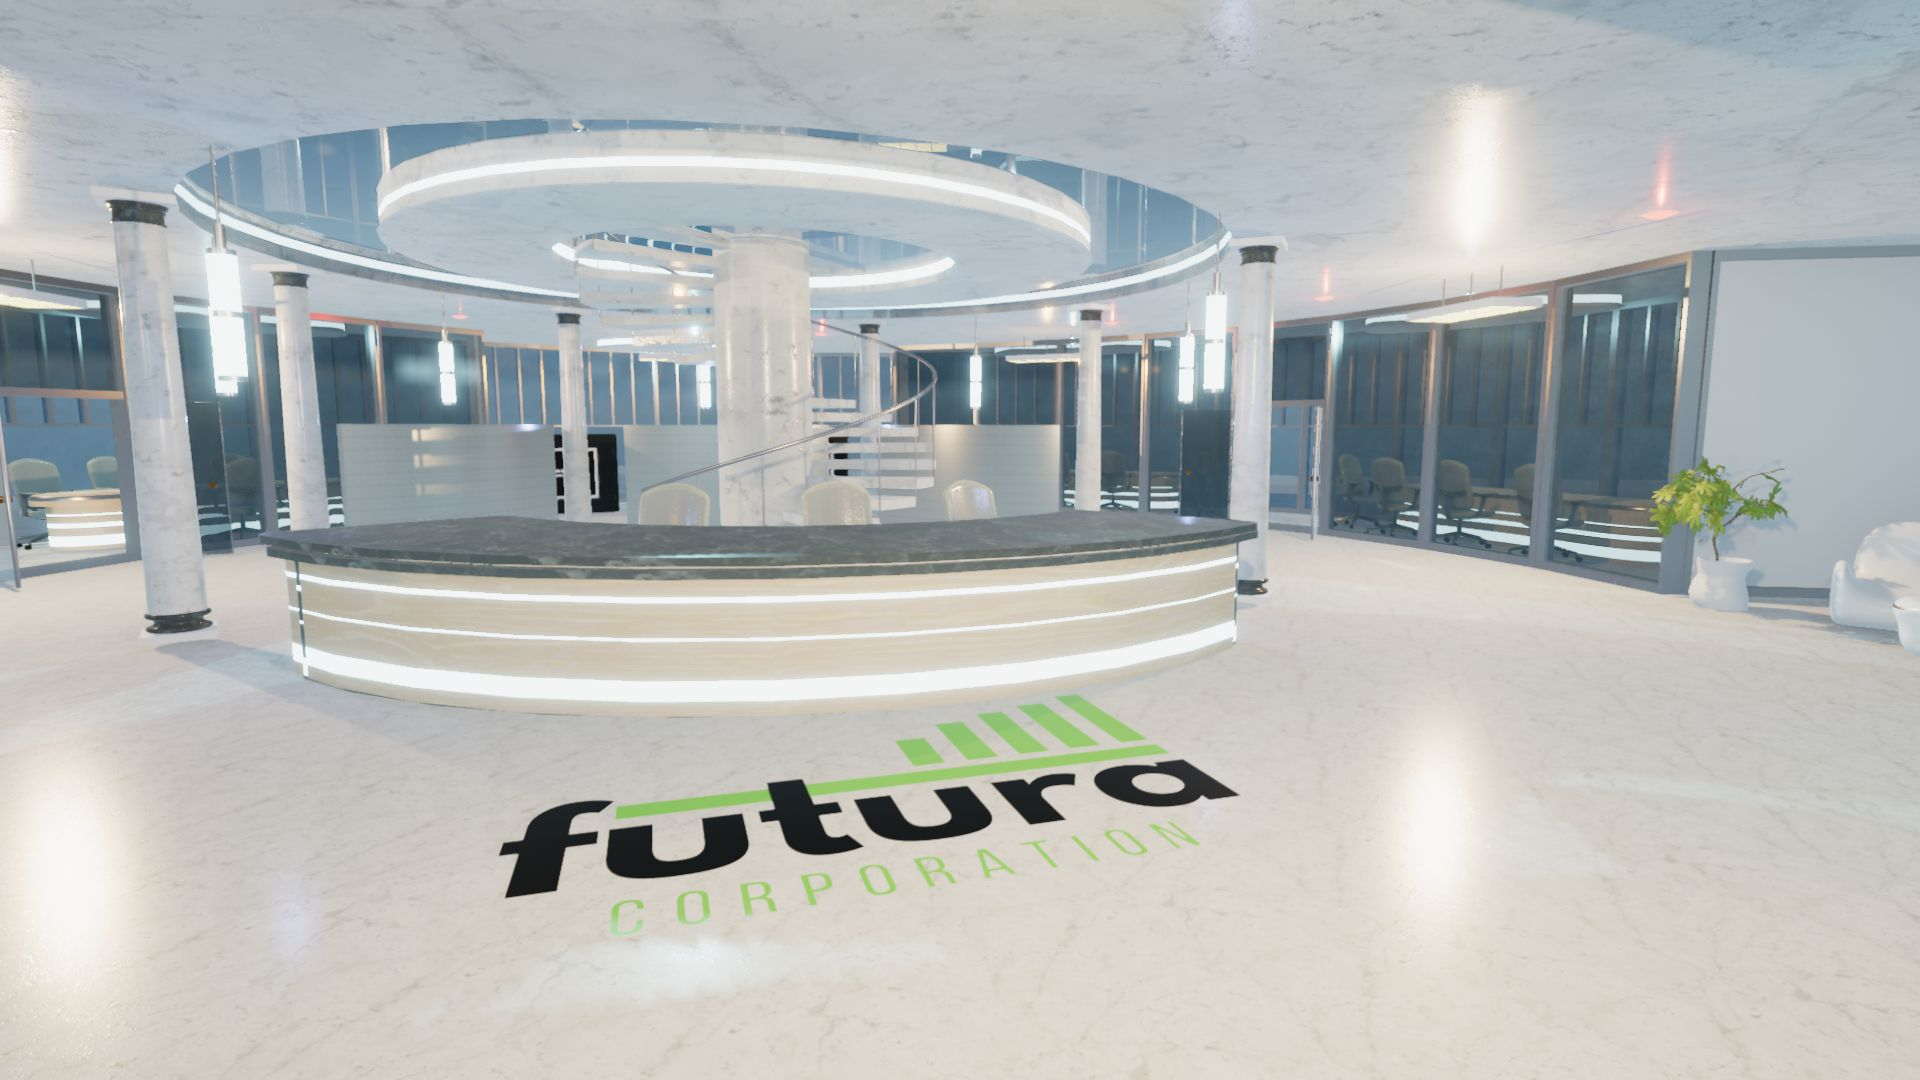 An image showing Corporate Building Futura asset pack, created with Unity Engine.